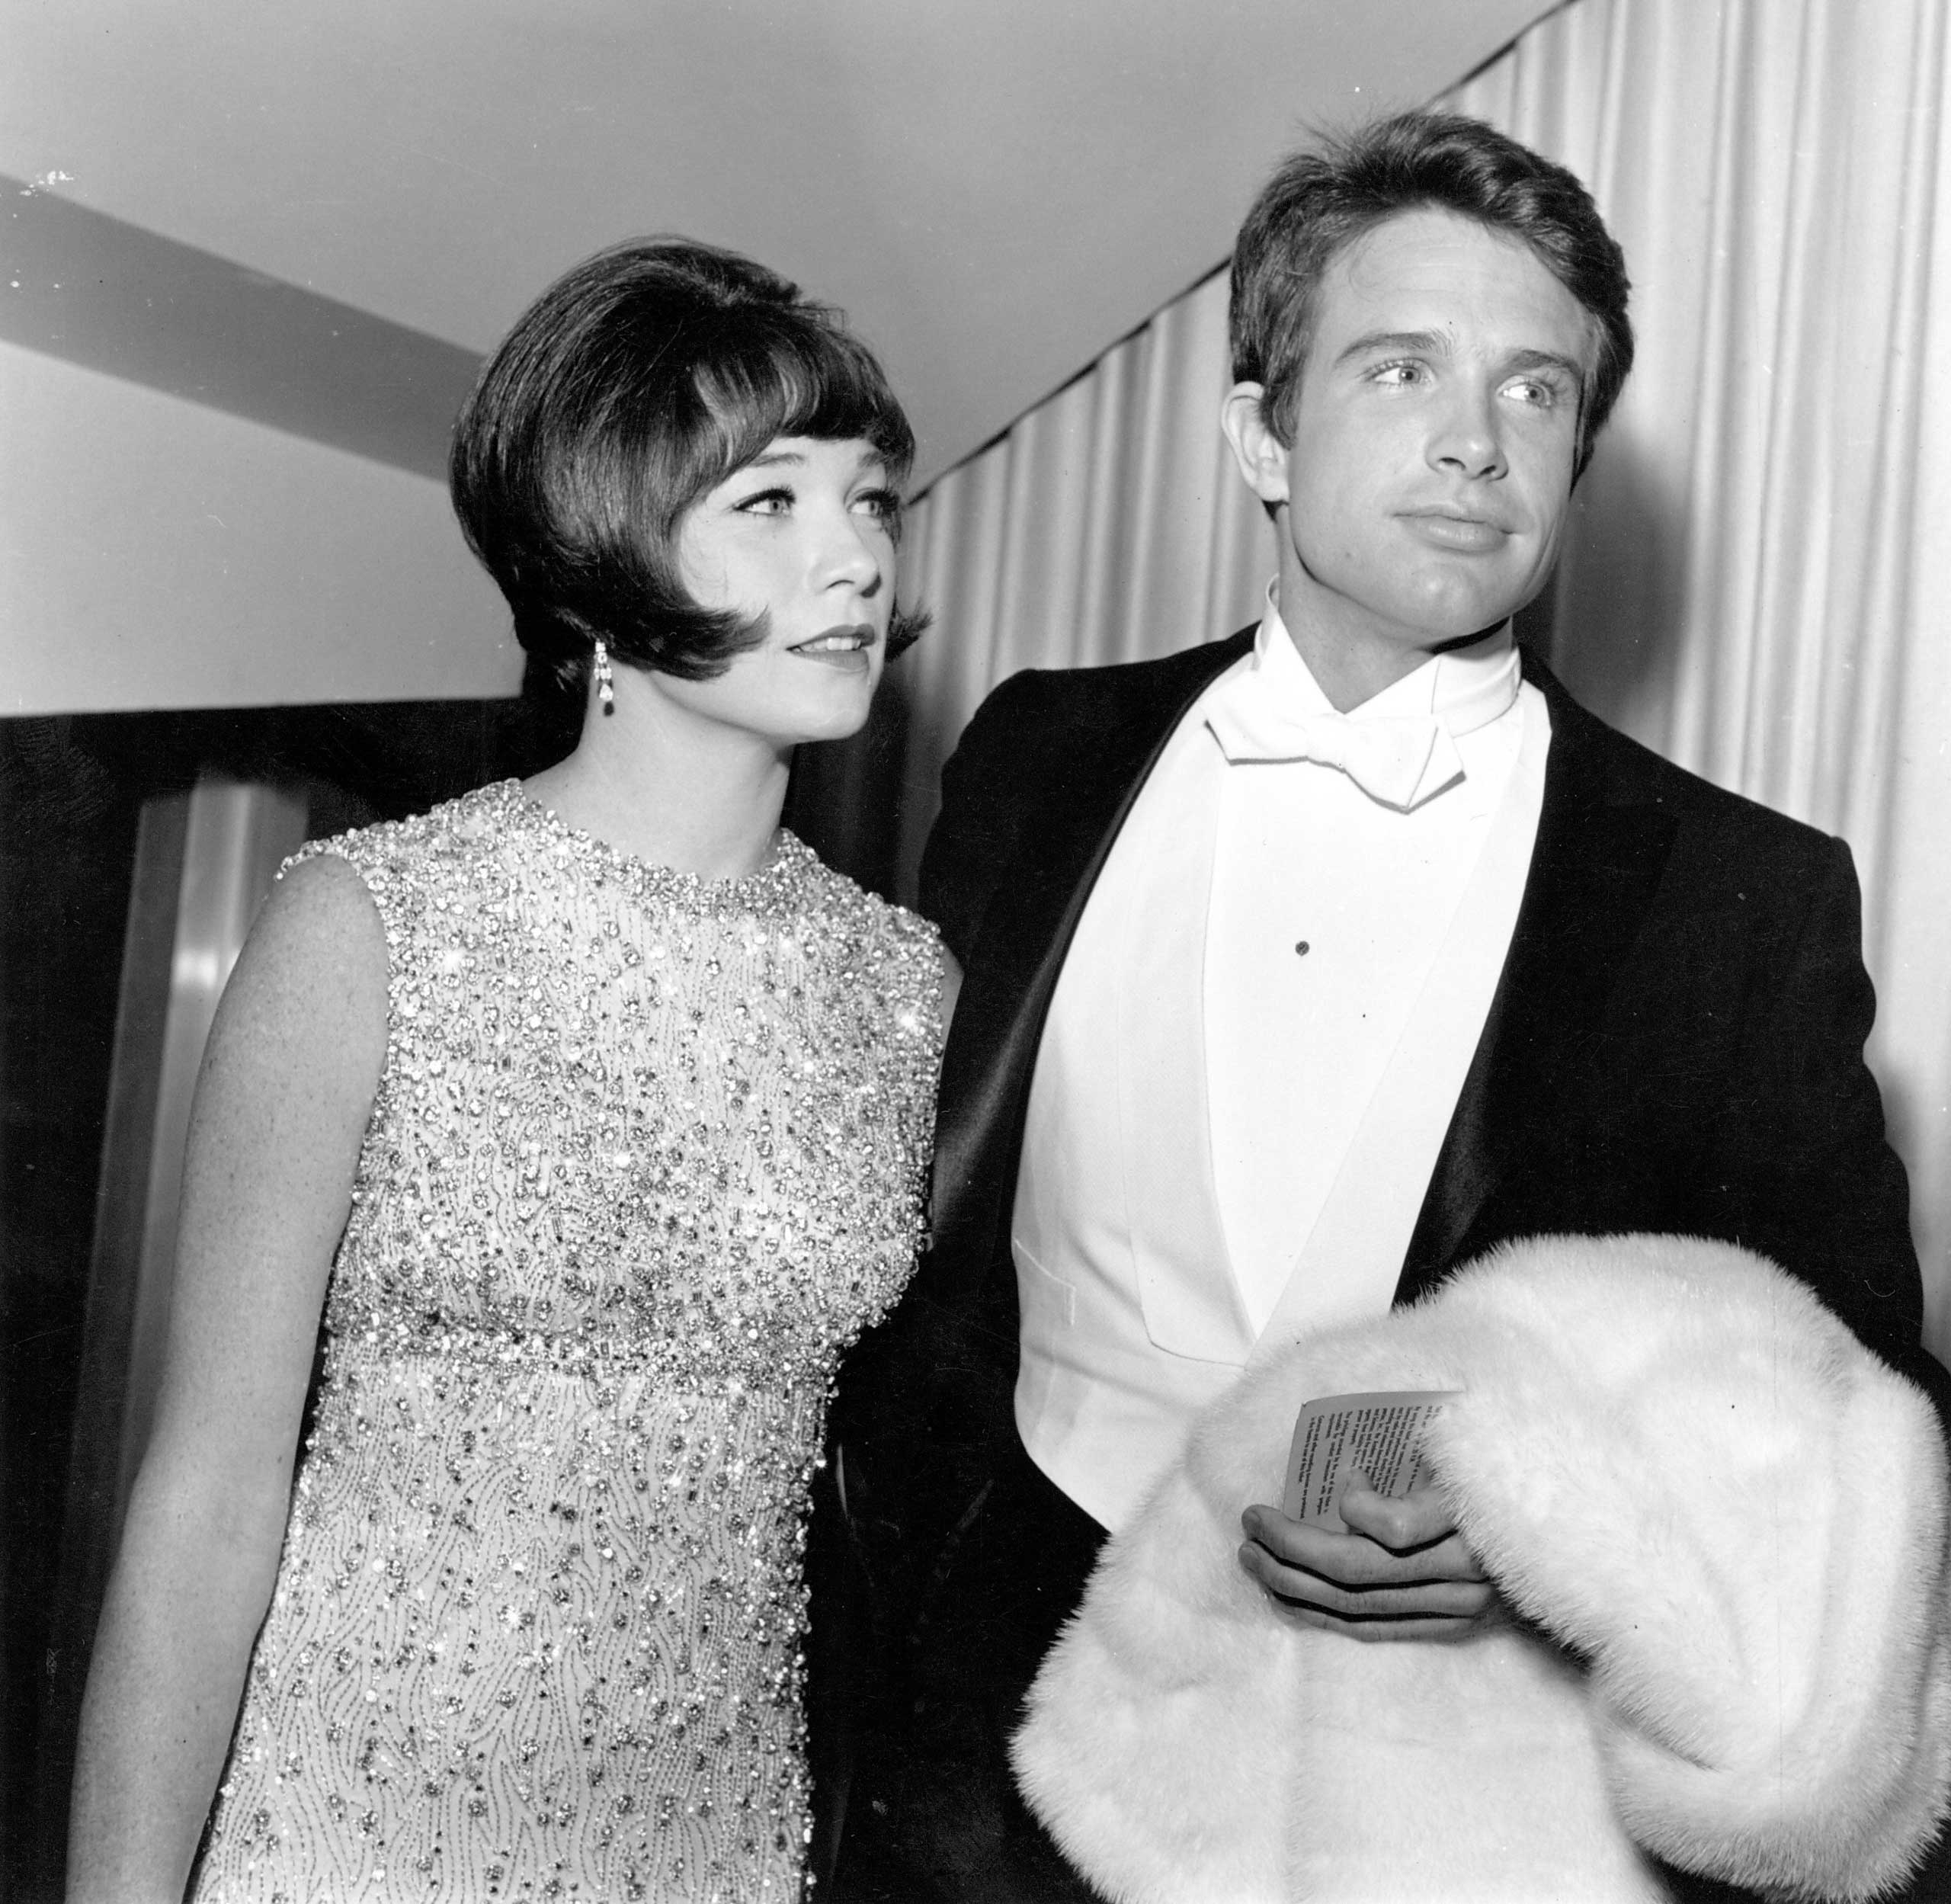 WARREN BEATTY AND SHIRLEY MACLAINE: In a 1996 interview, MacLaine, who is older, said that their drama teacher mother pushed them to succeed.  There's no way,  she said,  Warren and I wouldn't become stars.